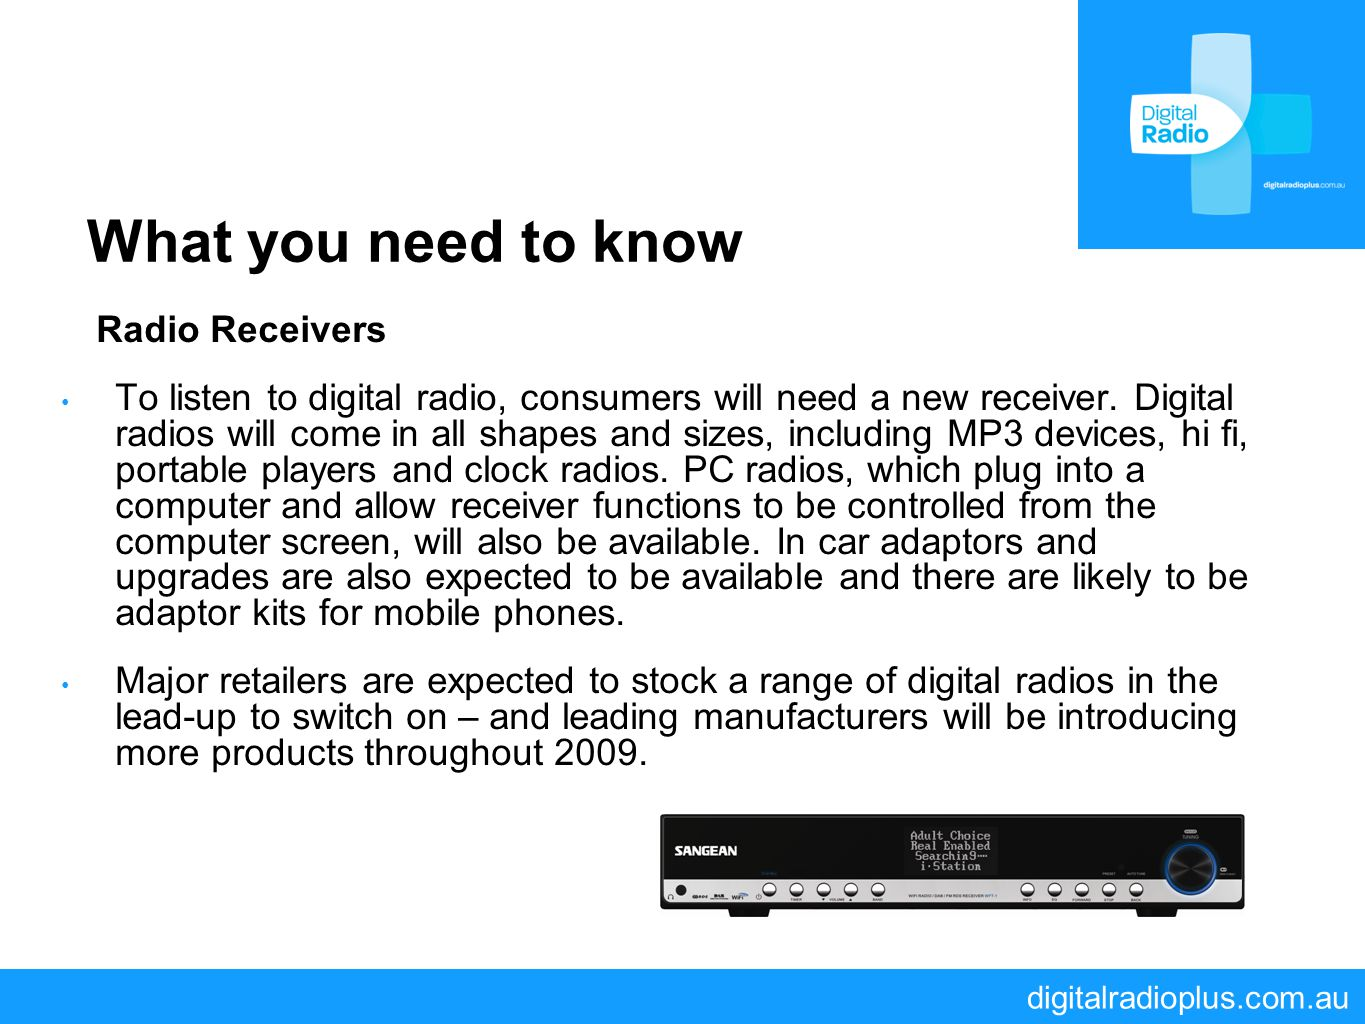 digitalradioplus.com.au What you need to know Radio Receivers To listen to digital radio, consumers will need a new receiver. Digital radios will come